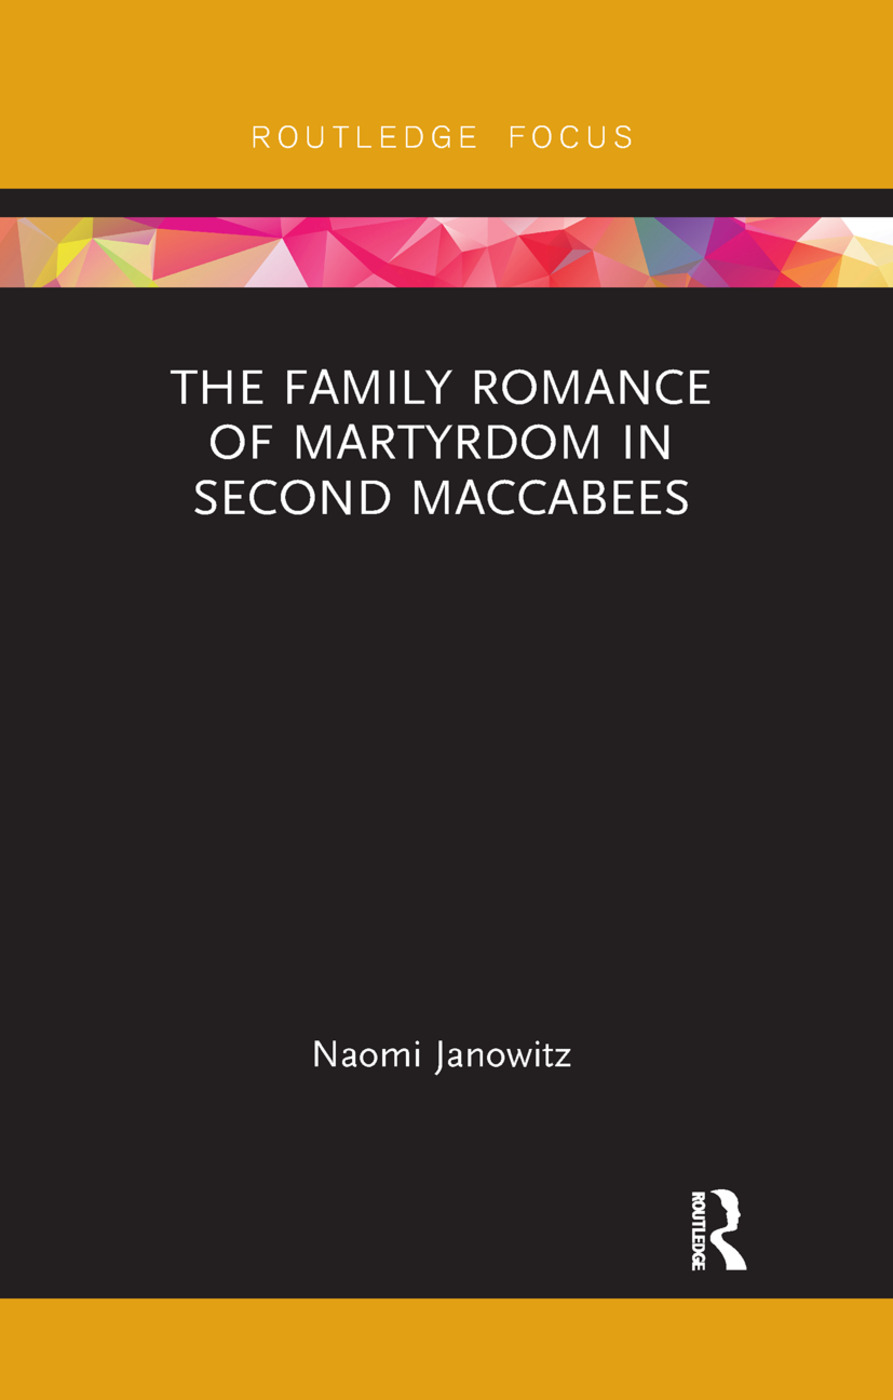 The Family Romance of Martyrdom in Second Maccabees book cover